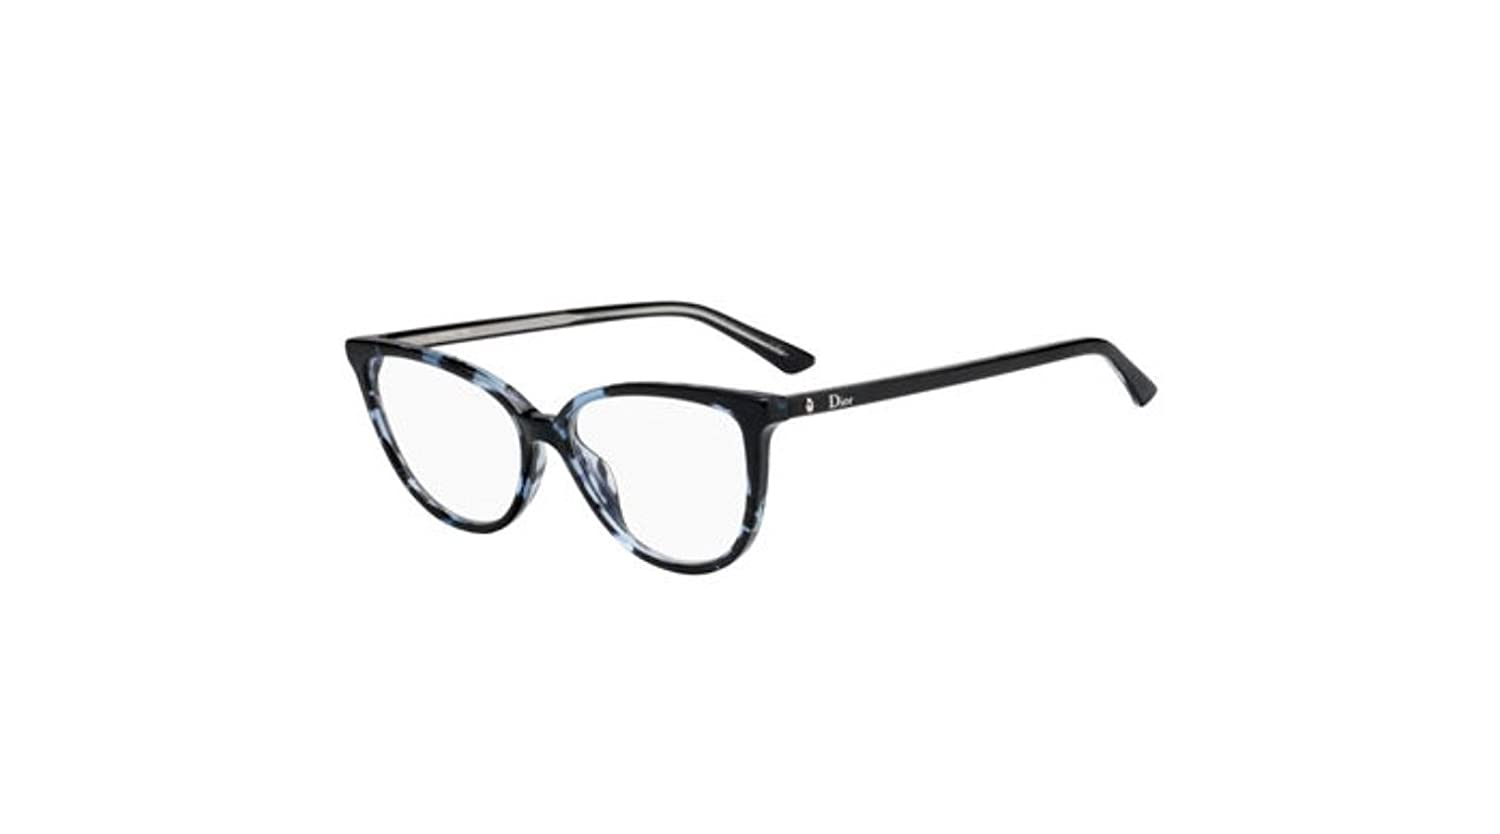 fa1db870e95 Amazon.com  Authentic Christian Dior Montaigne 33 0JBW Blue Havana  Eyeglasses  Clothing